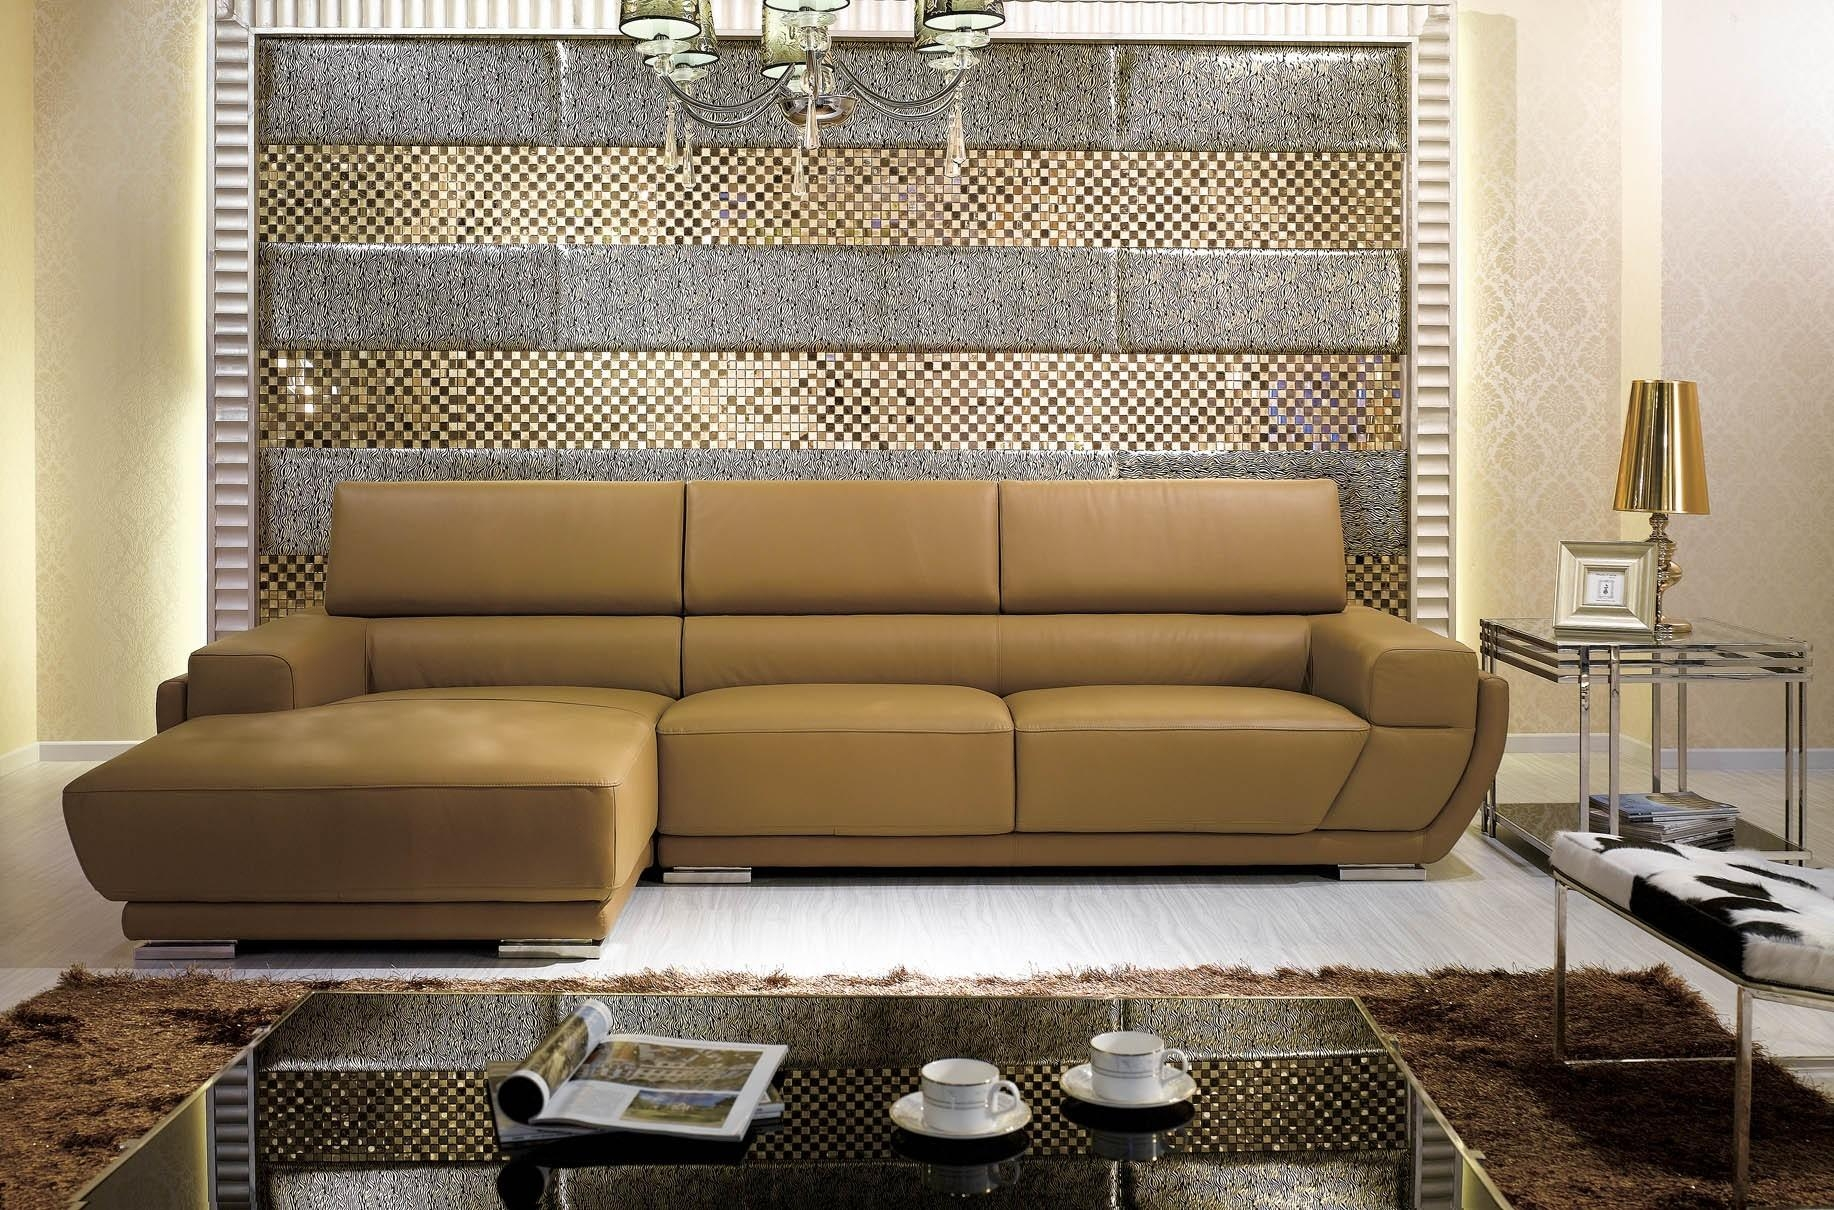 K8300 Modern Camel Italian Leather Sectional Sofa Throughout Camel Colored Sectional Sofa (Image 10 of 15)